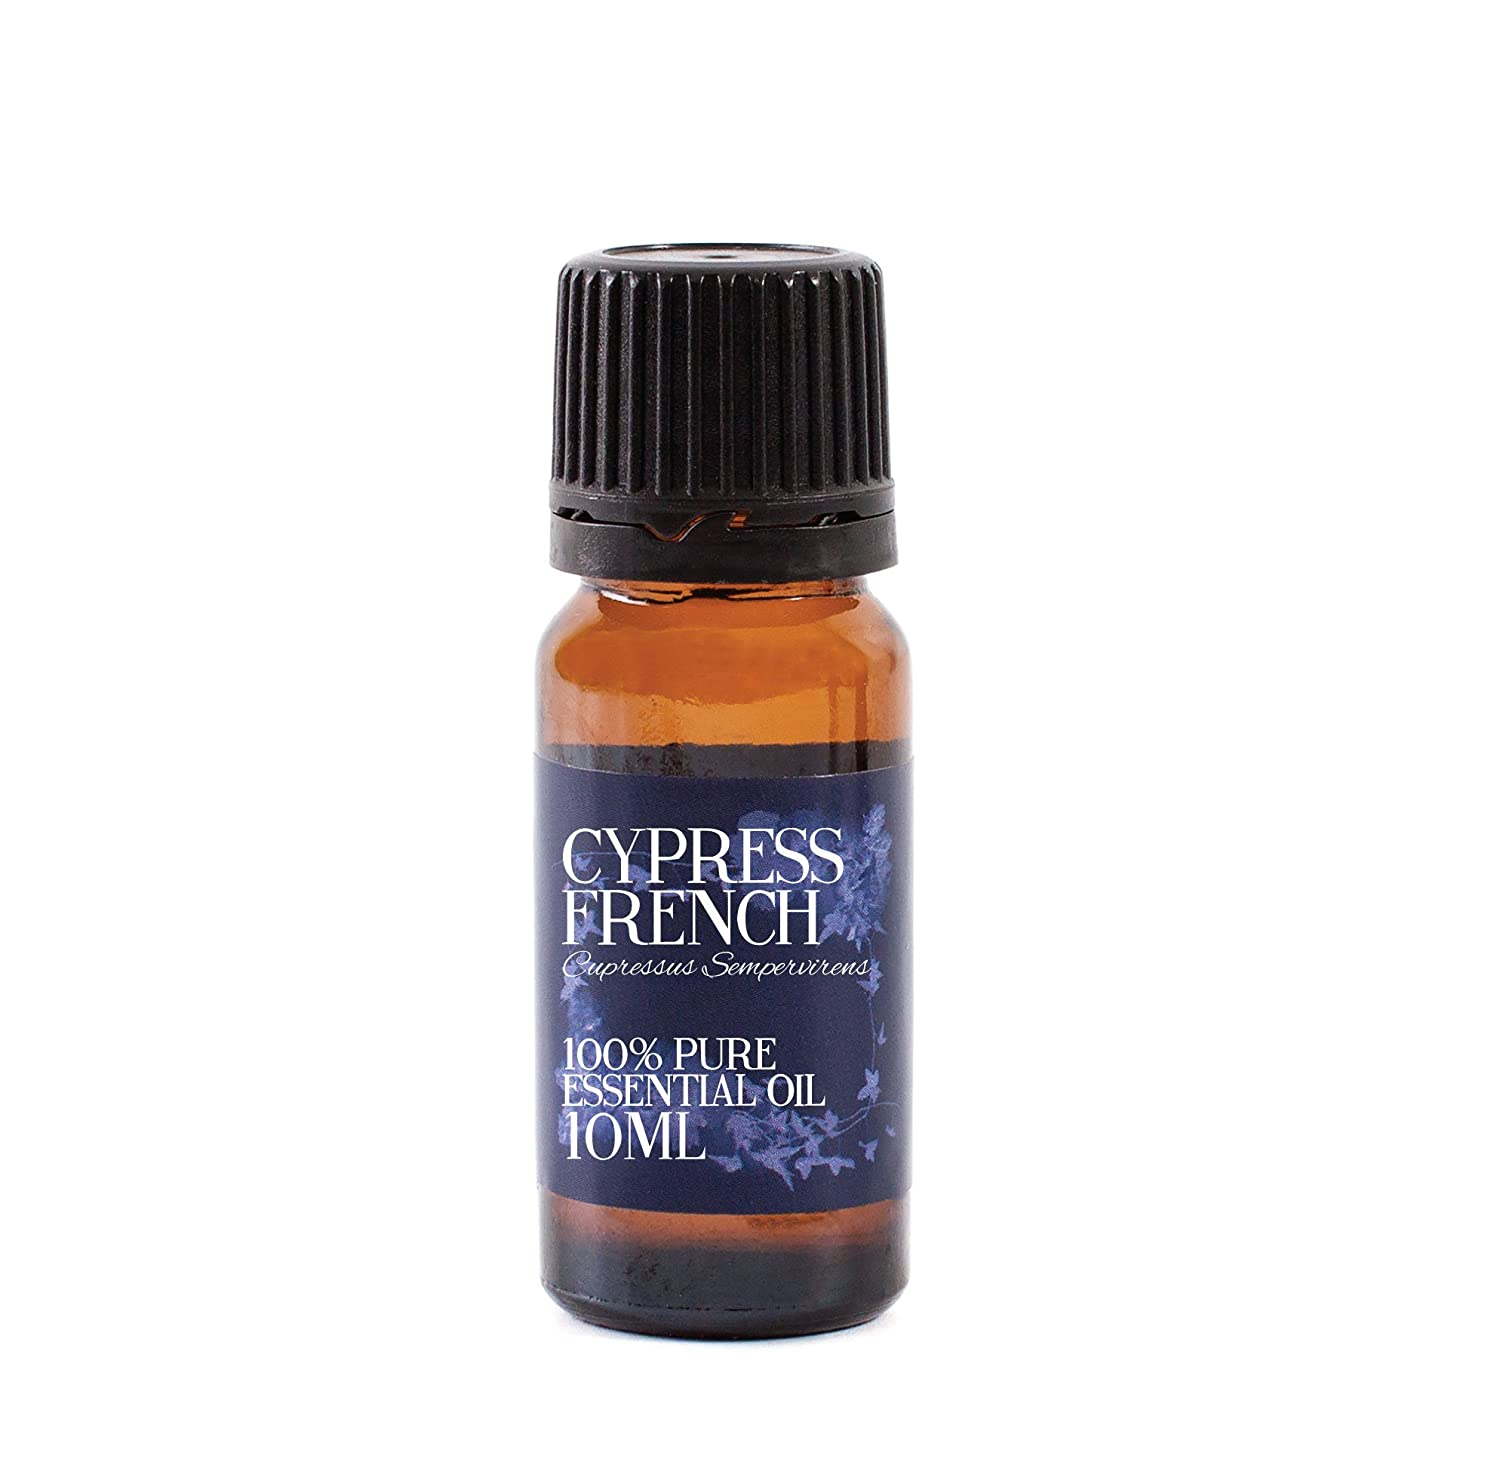 Cypress French Essential Oil - 10ml - 100% Pure Mystic Moments EOCYPRESSFRENCH10